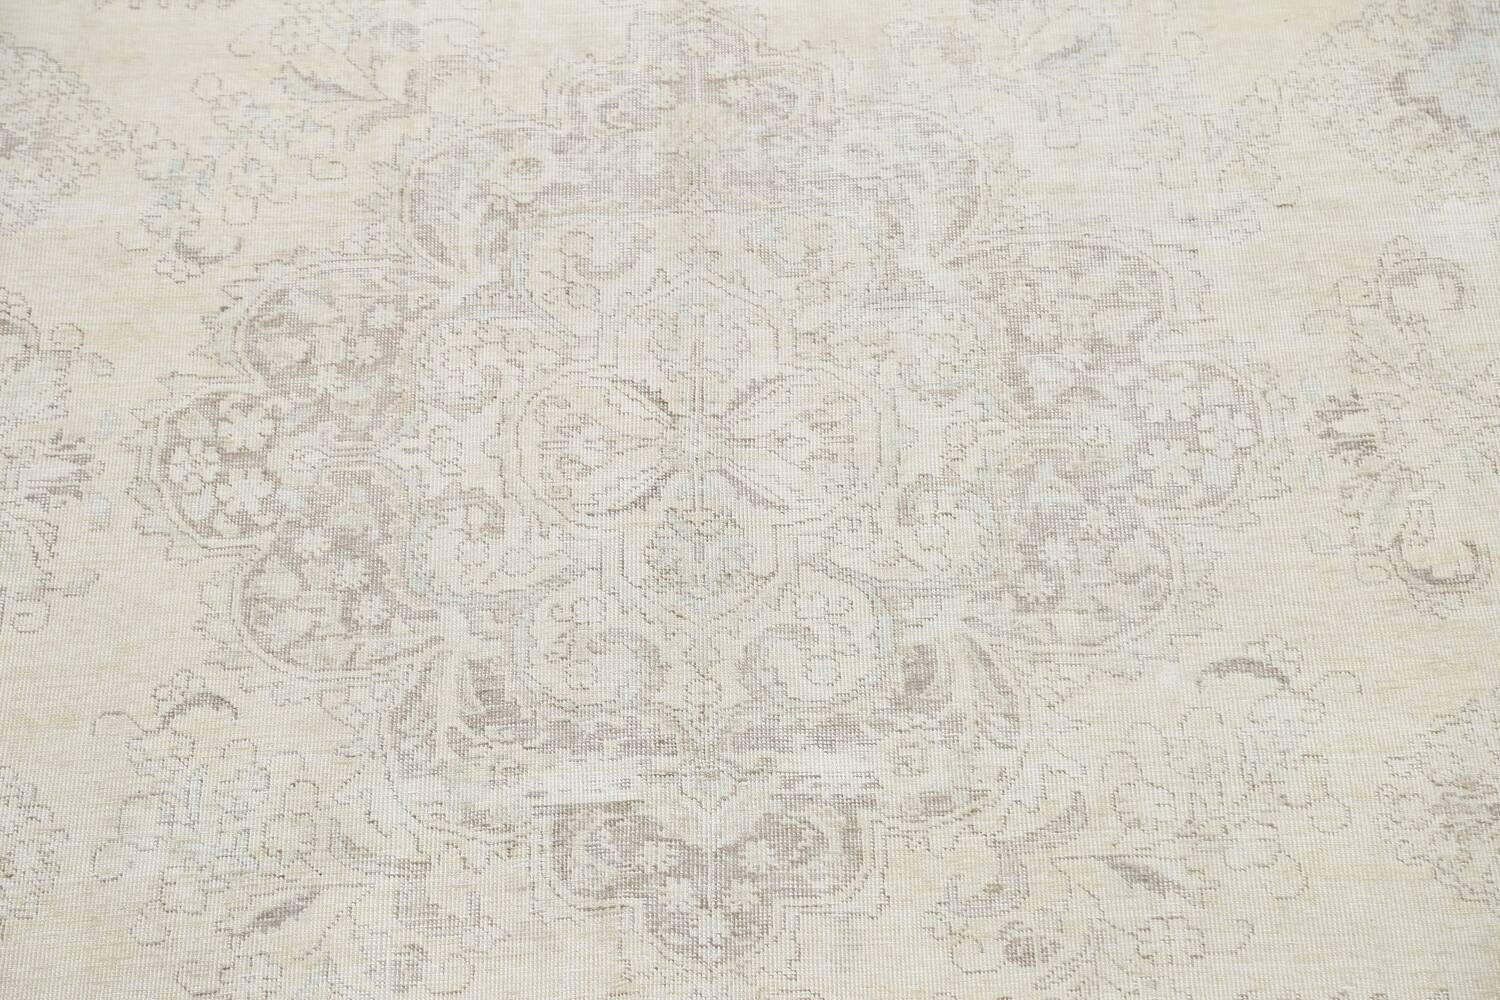 Muted Distressed Tabriz Persian Area Rug 10x12 image 4